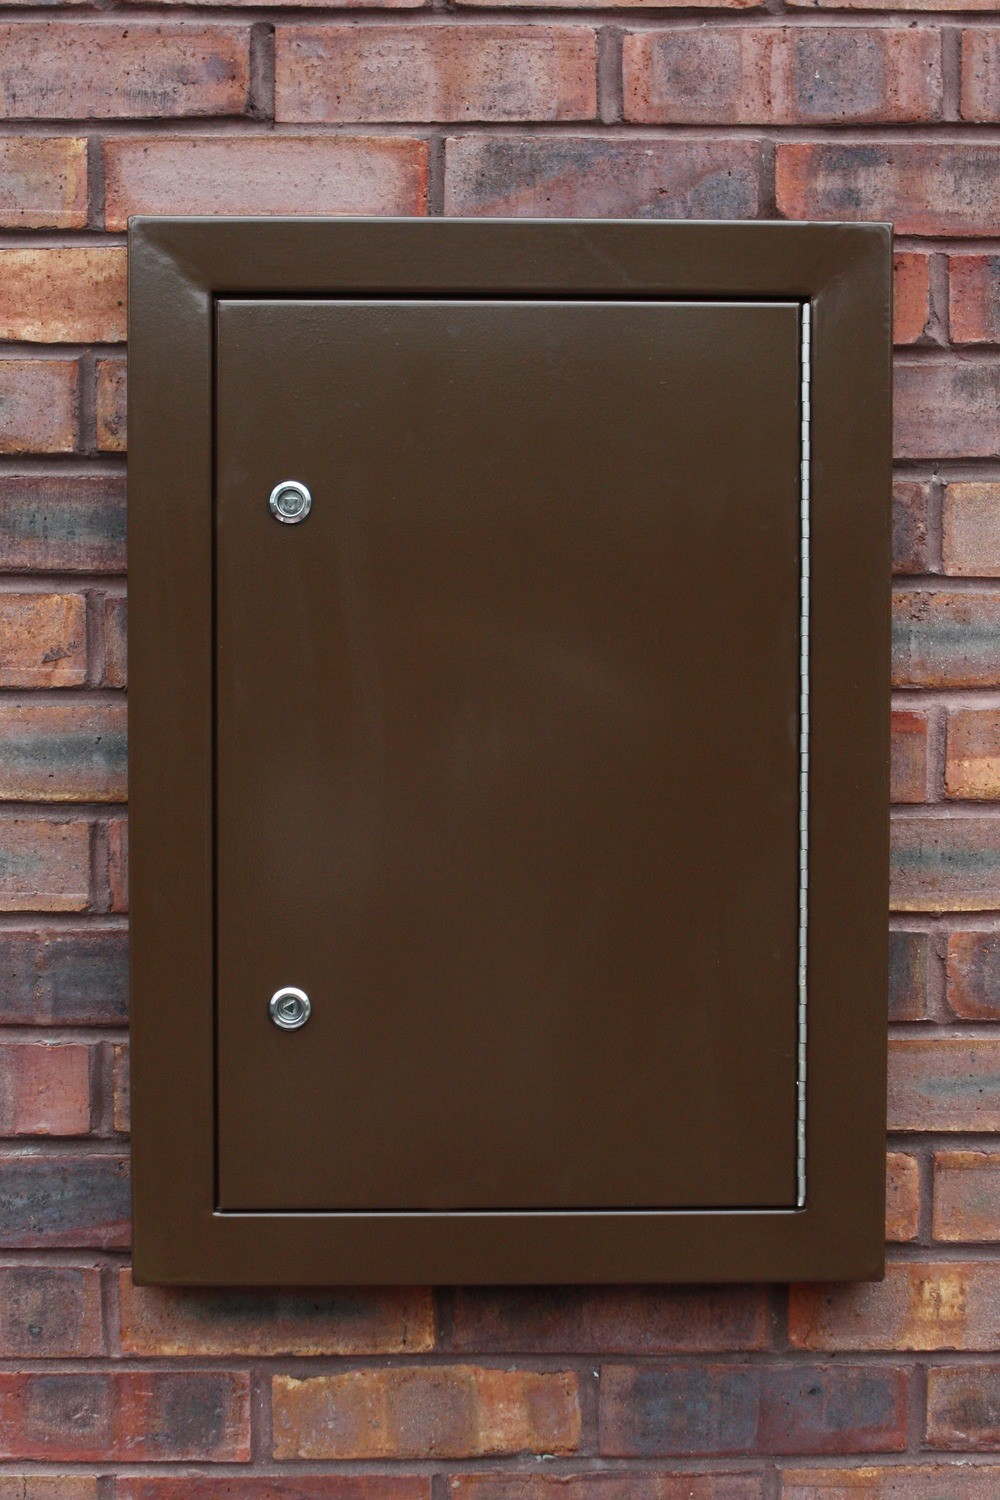 Ob7 Brown Architrave Meter Overbox 700 X 500 X 50 Mm